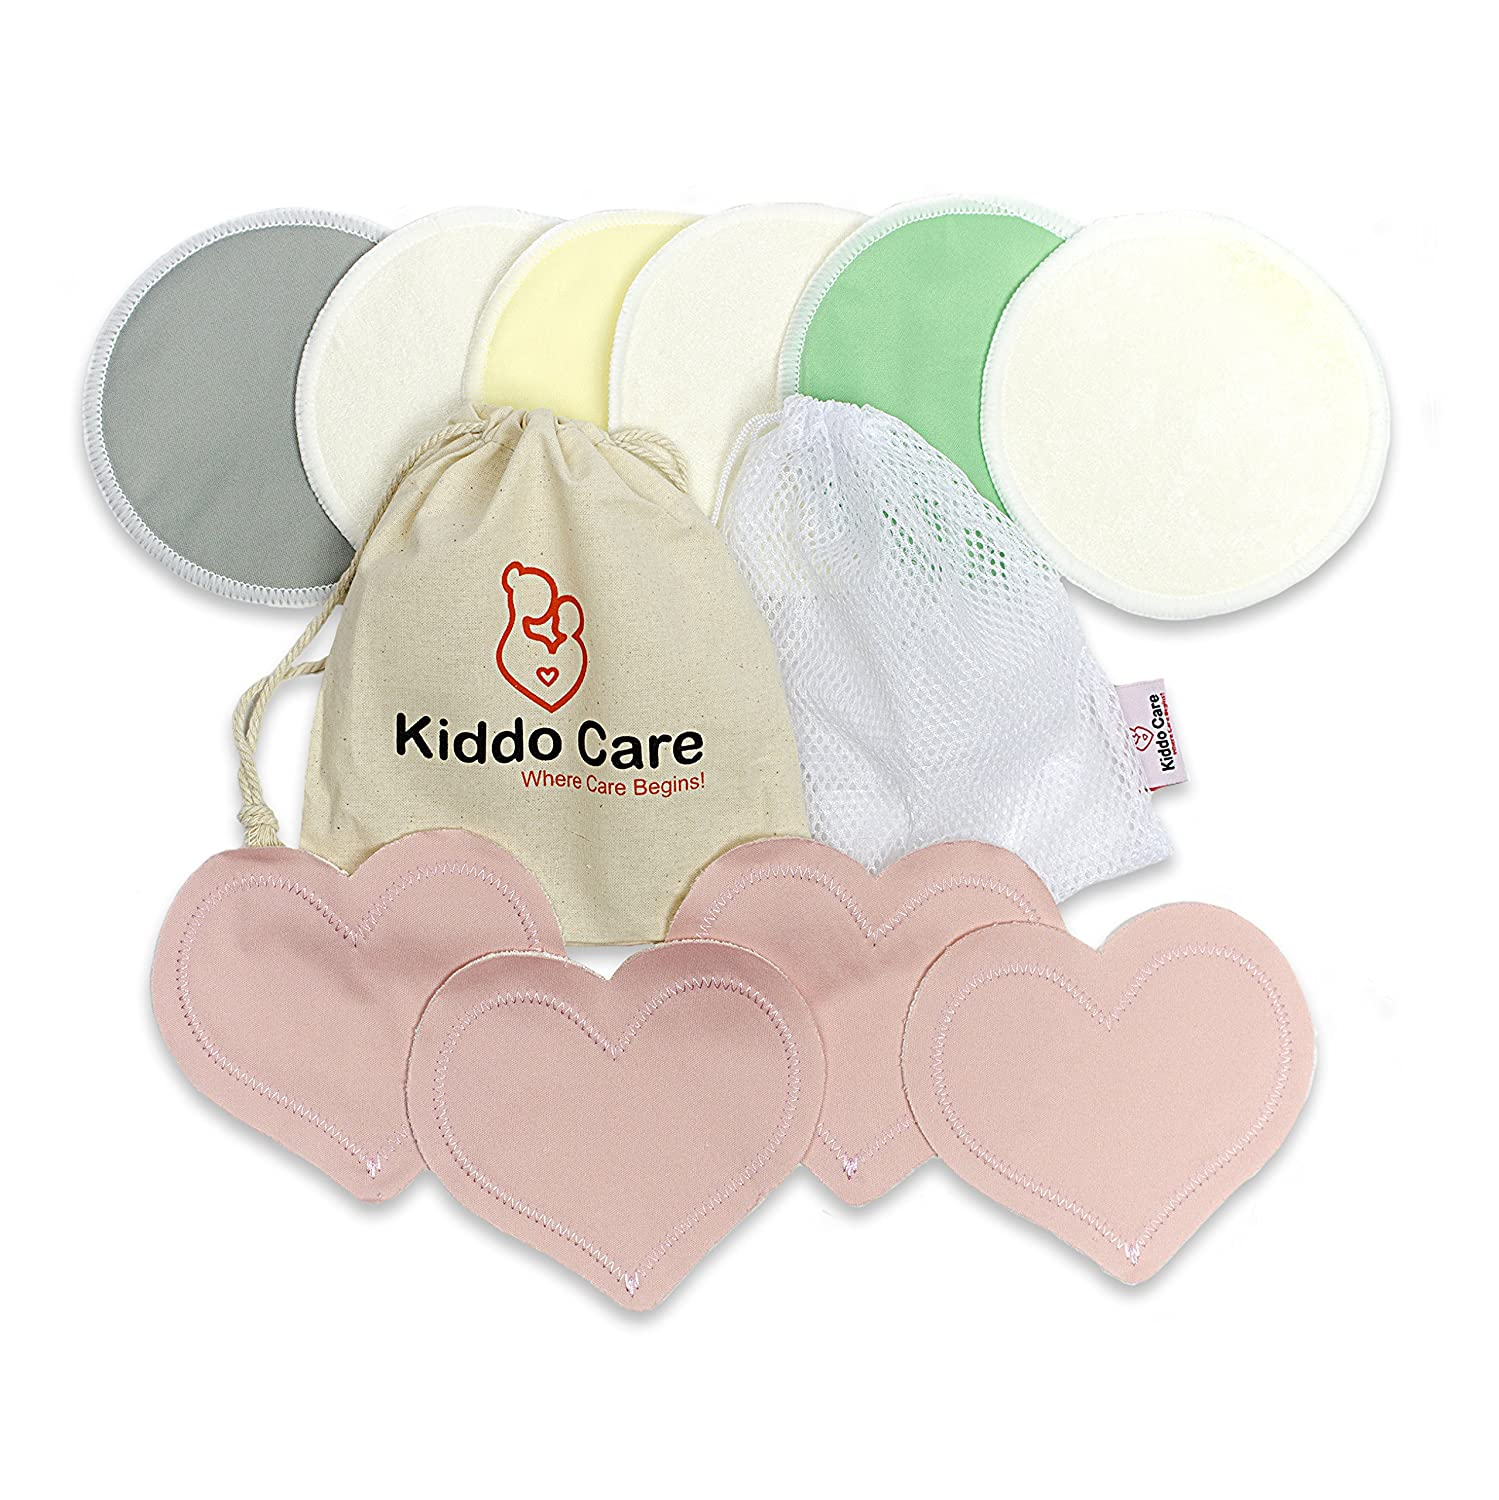 Kiddo Care Washable Organic Bamboo Nursing Pads -10 Pack Colored (5 Pairs)- Reusable Breast Pads,Bra Pads, Leakproof, Ultra Soft, Waterproof, Hypoallergenic Breastfeeding Pads, Absorbent Pads!